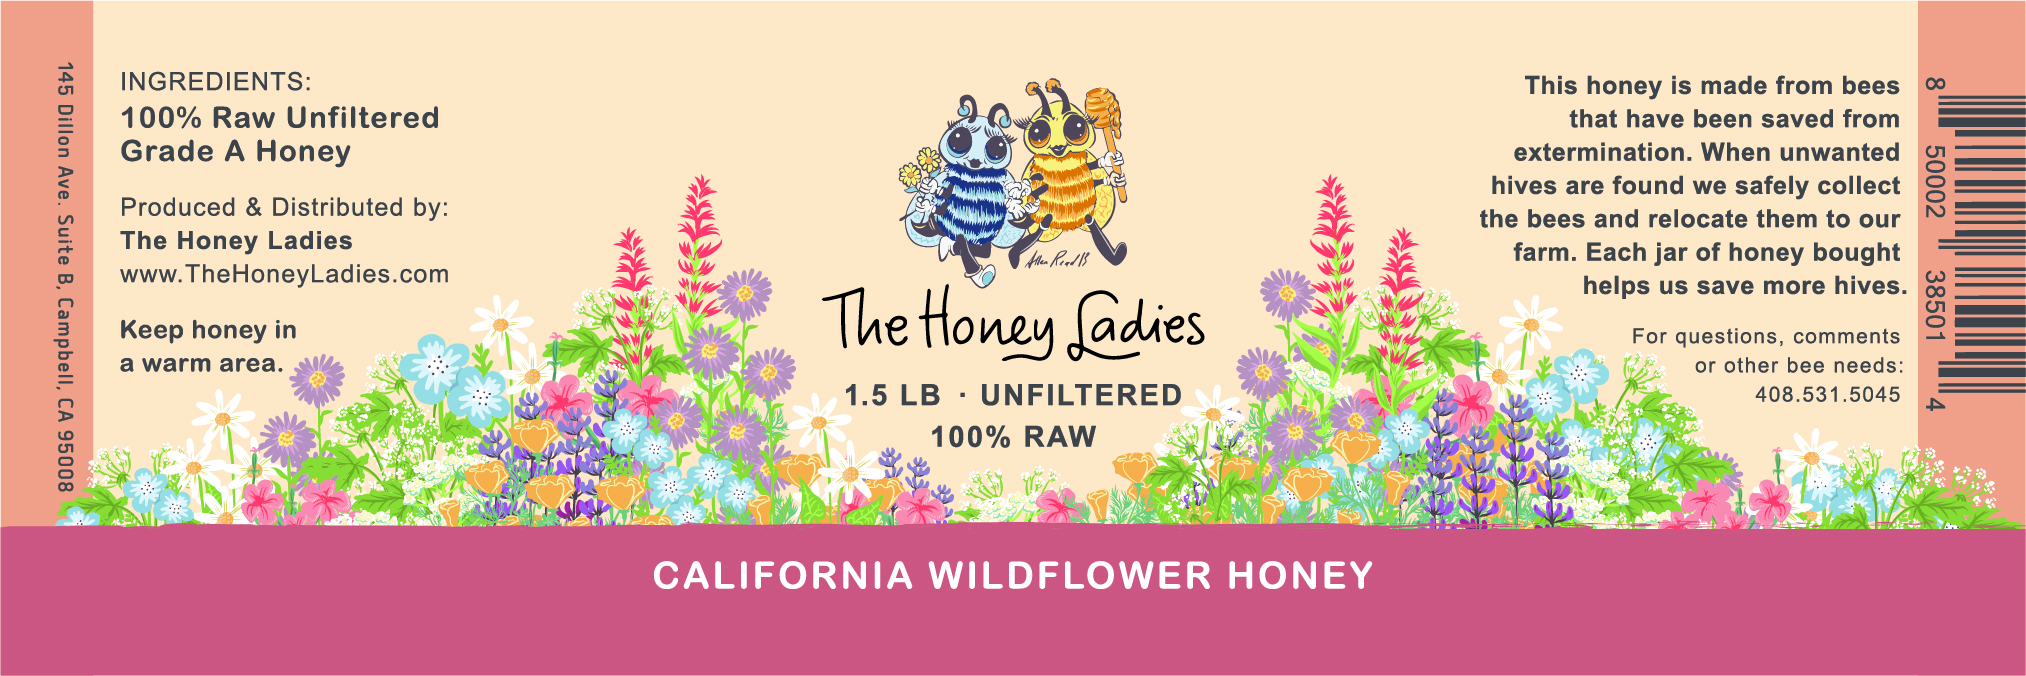 California Wildflower Honey